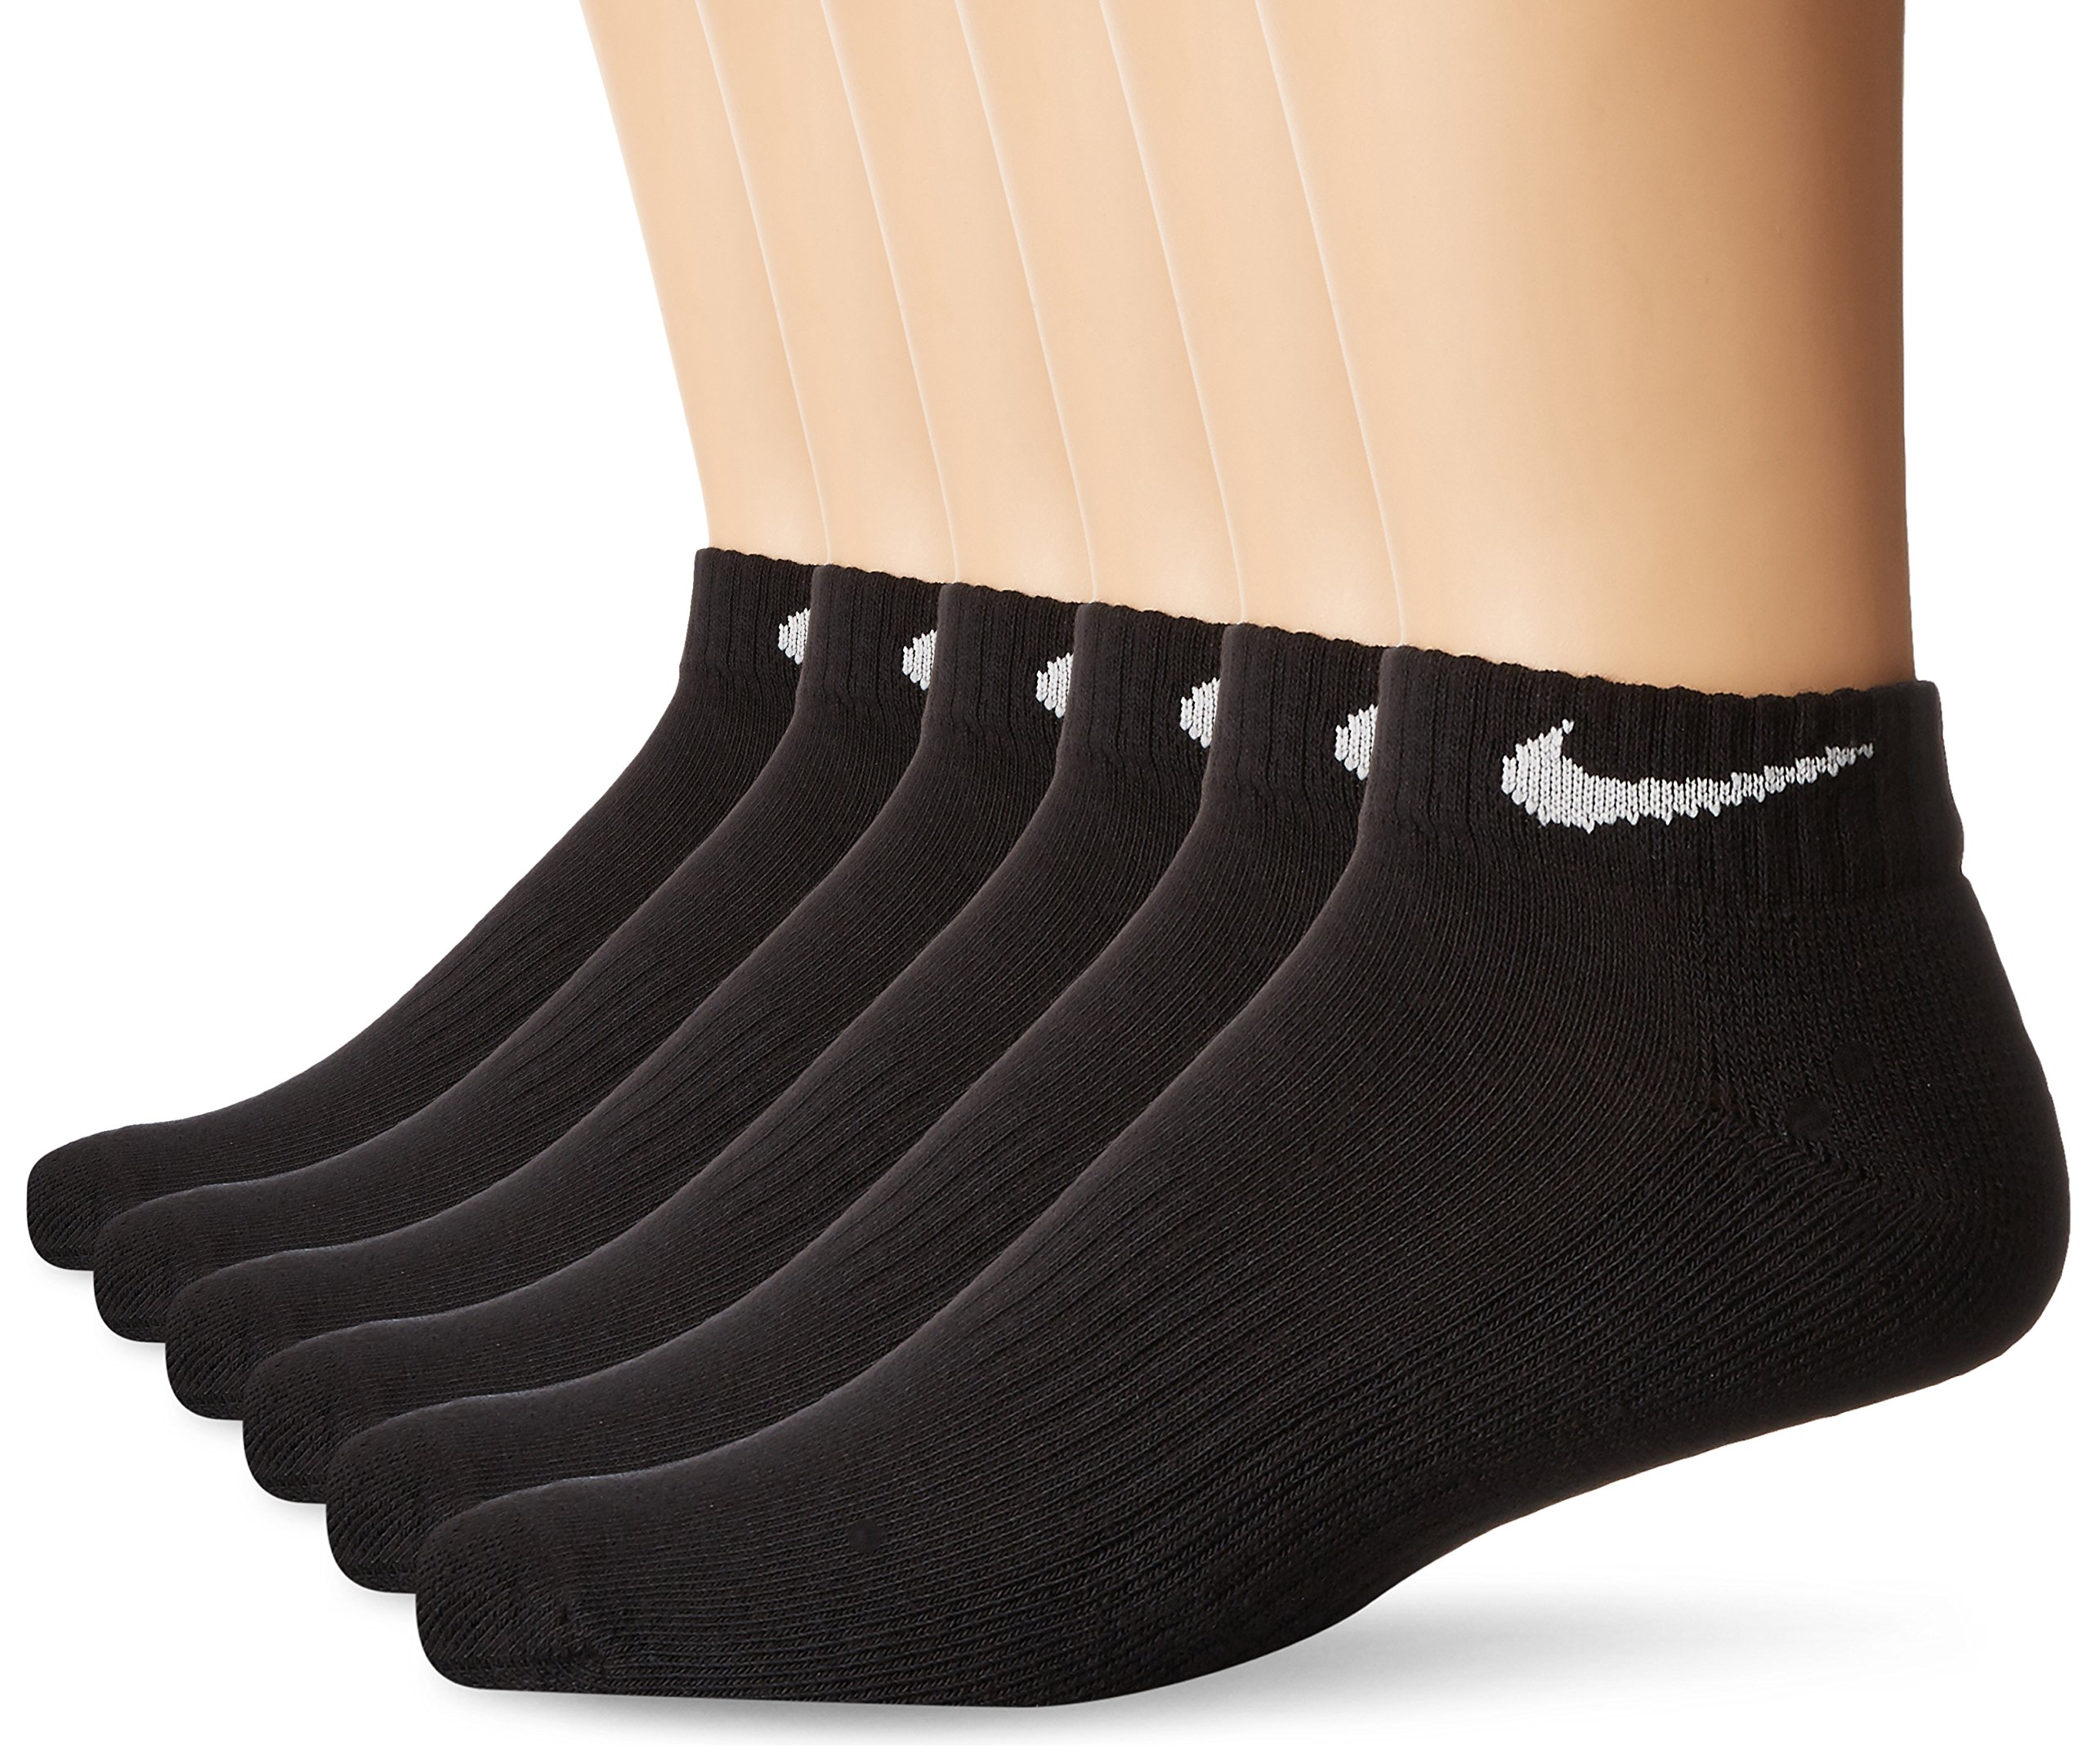 NIKE Unisex Performance Cushion Low Rise Socks with Bag (6 Pairs), Black/White, Large